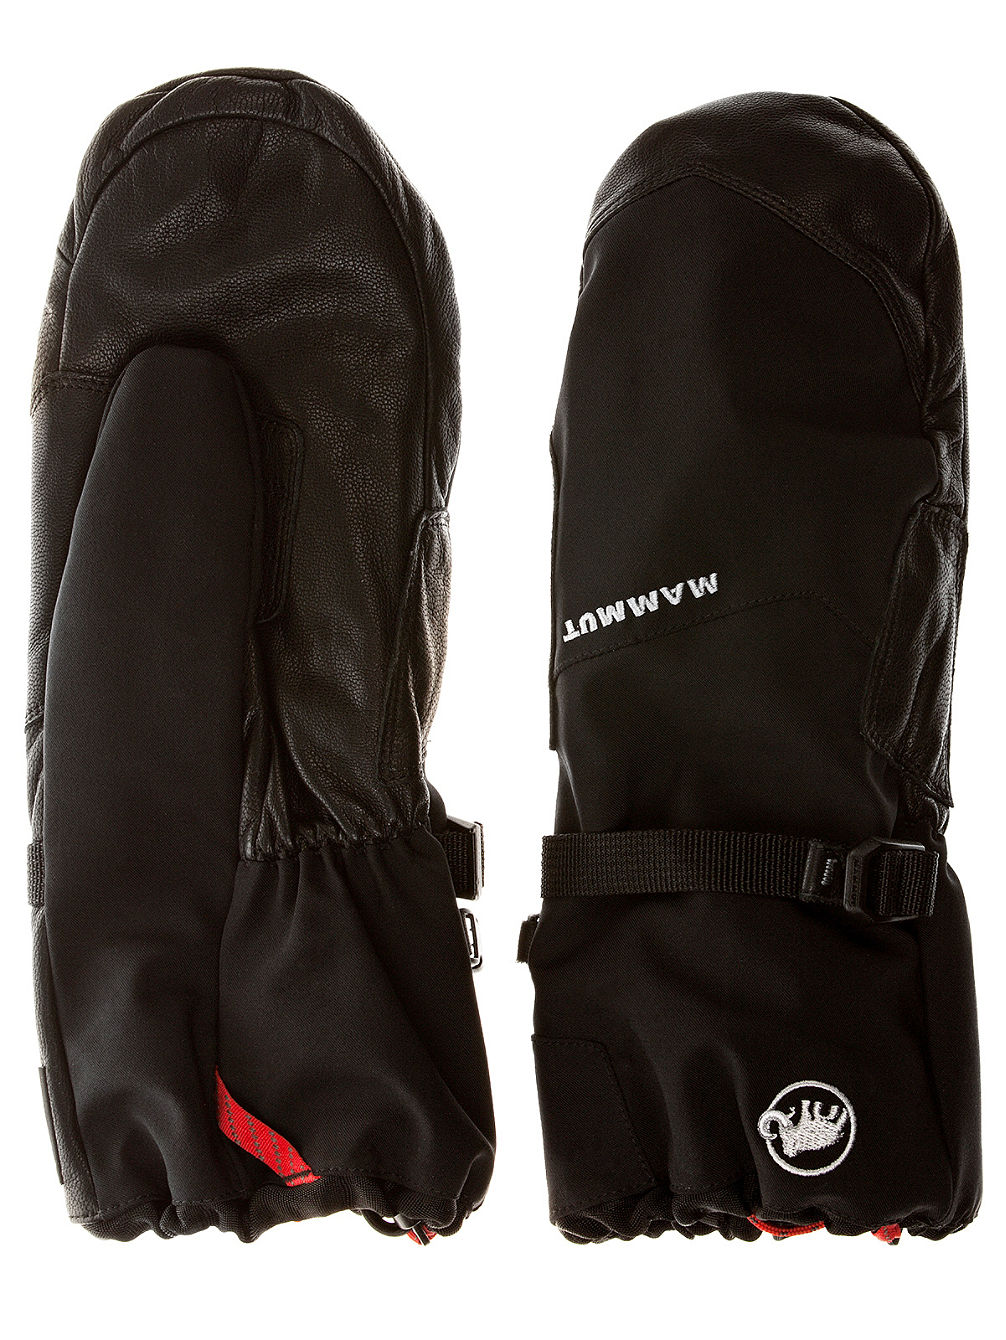 Meron Thermo 2 In 1 Mittens